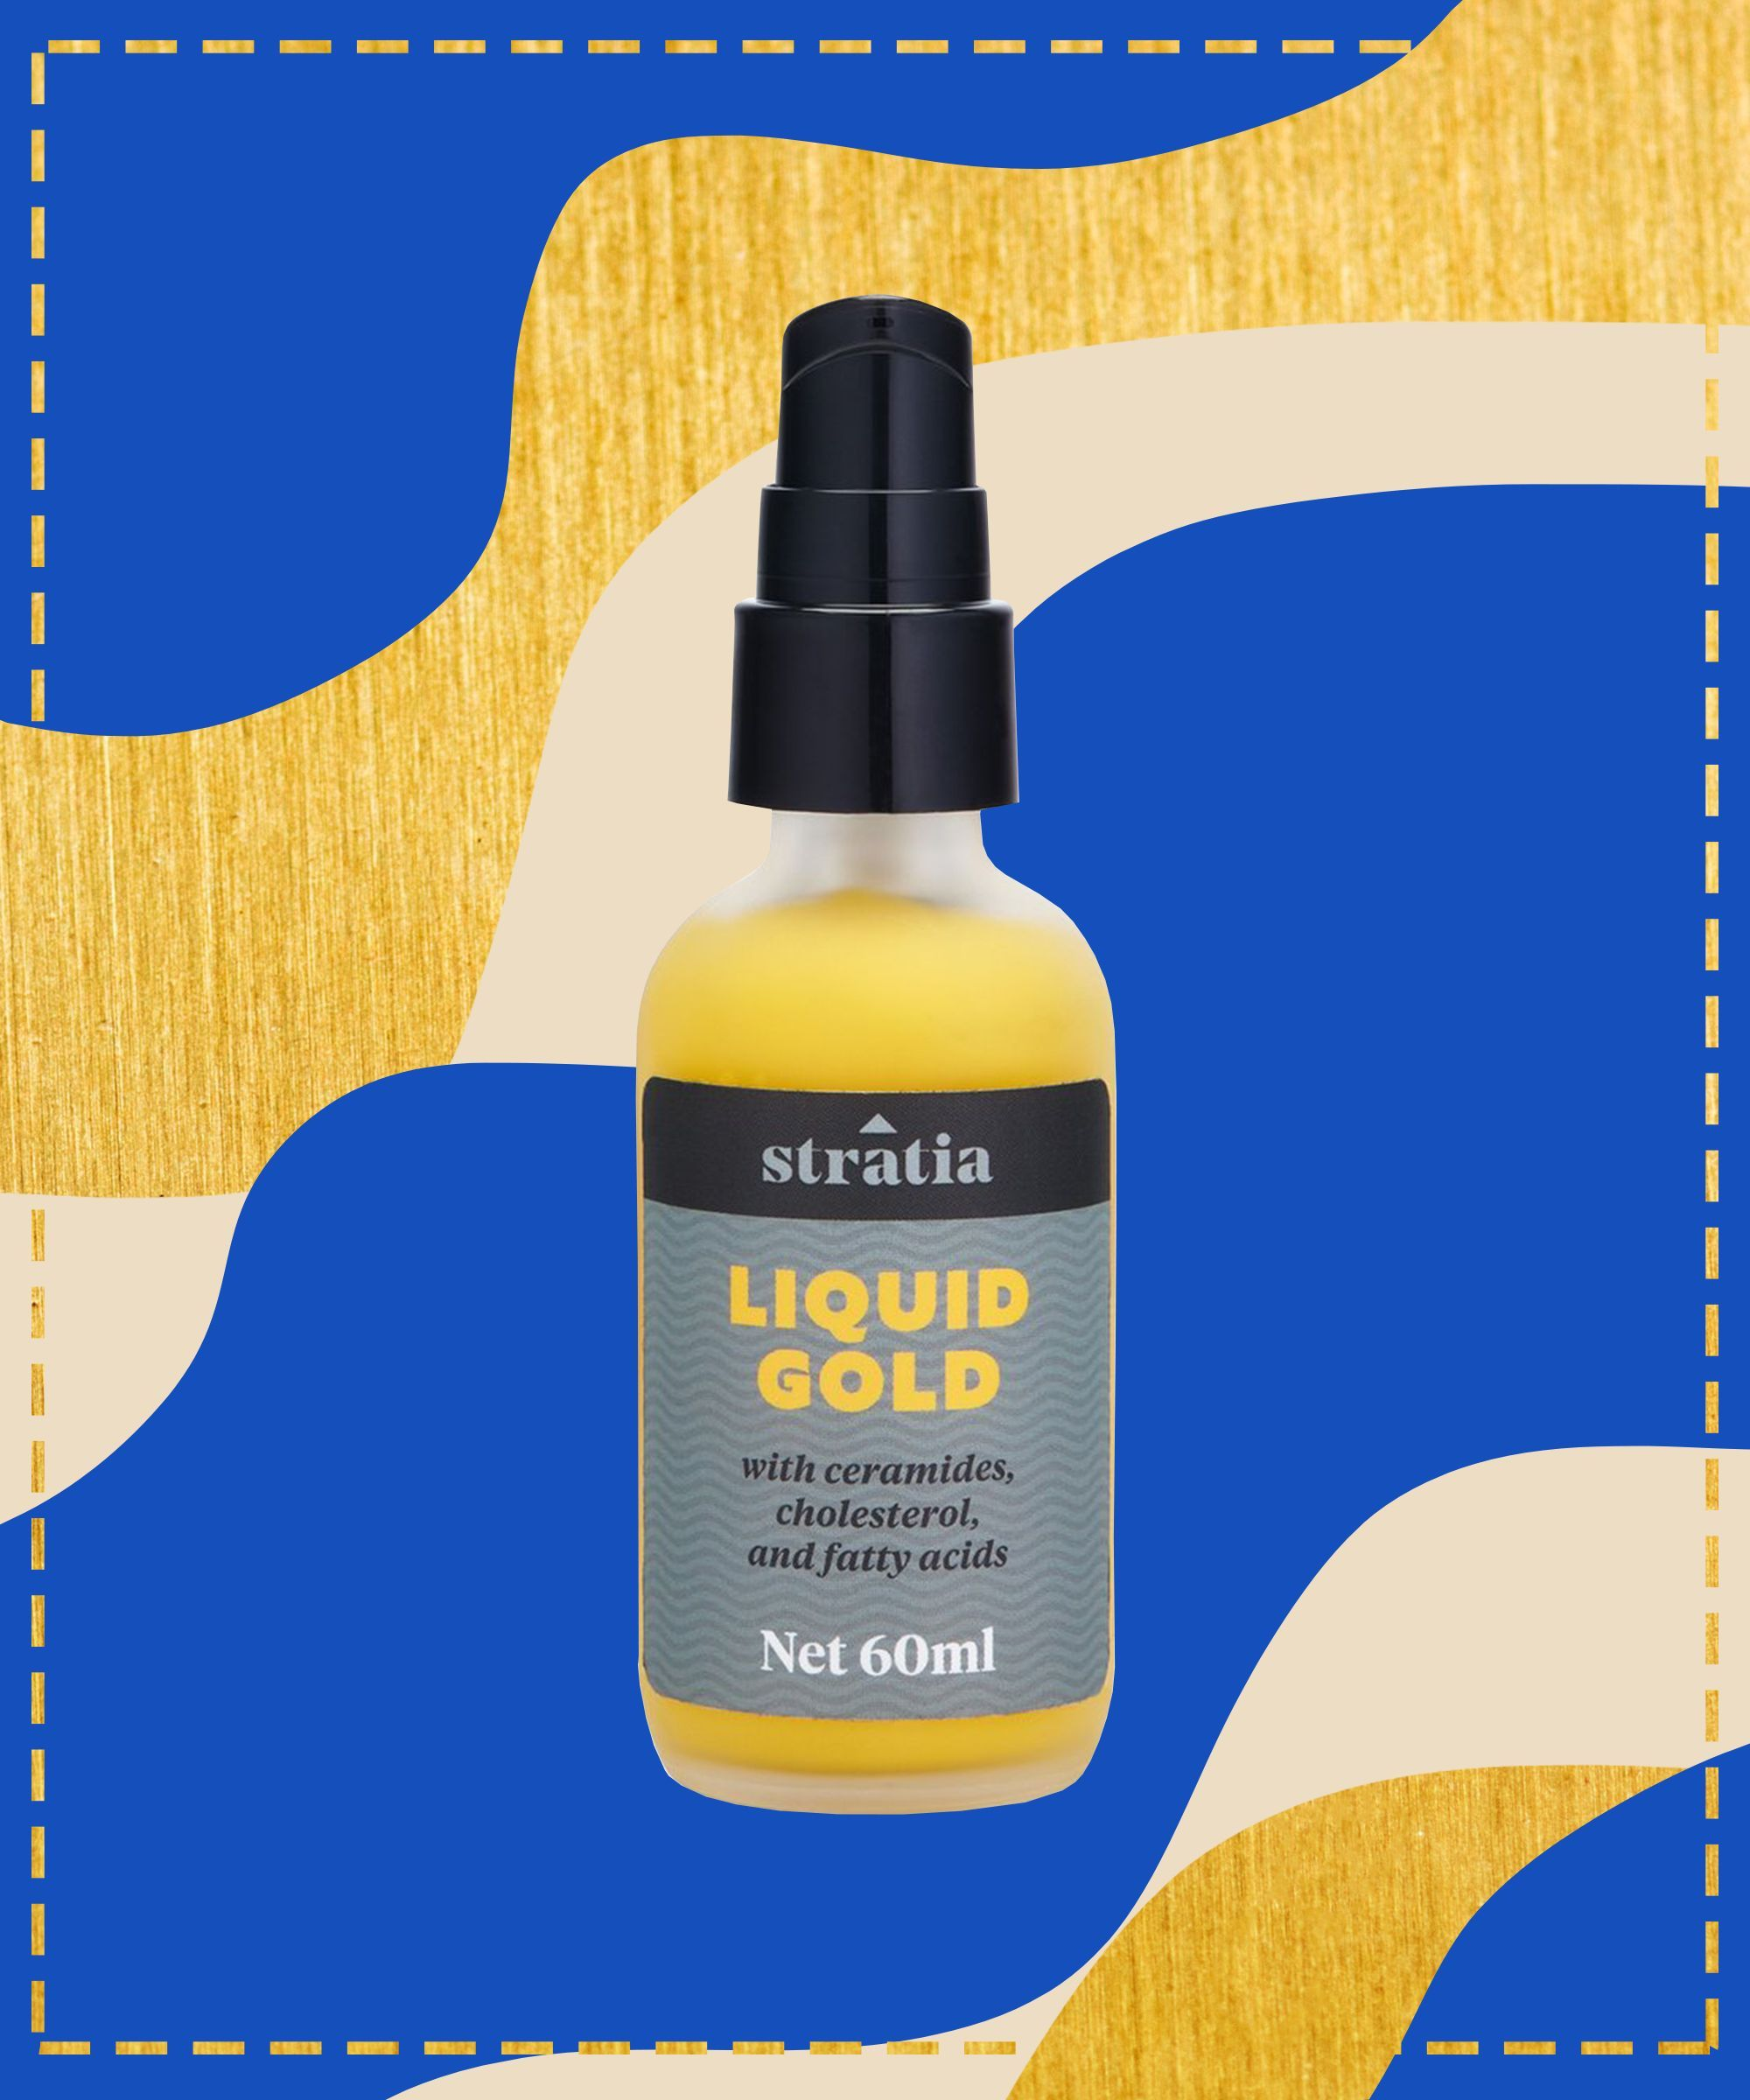 Reddit's Favorite Indie SkinCare Brand Sold Out In 3